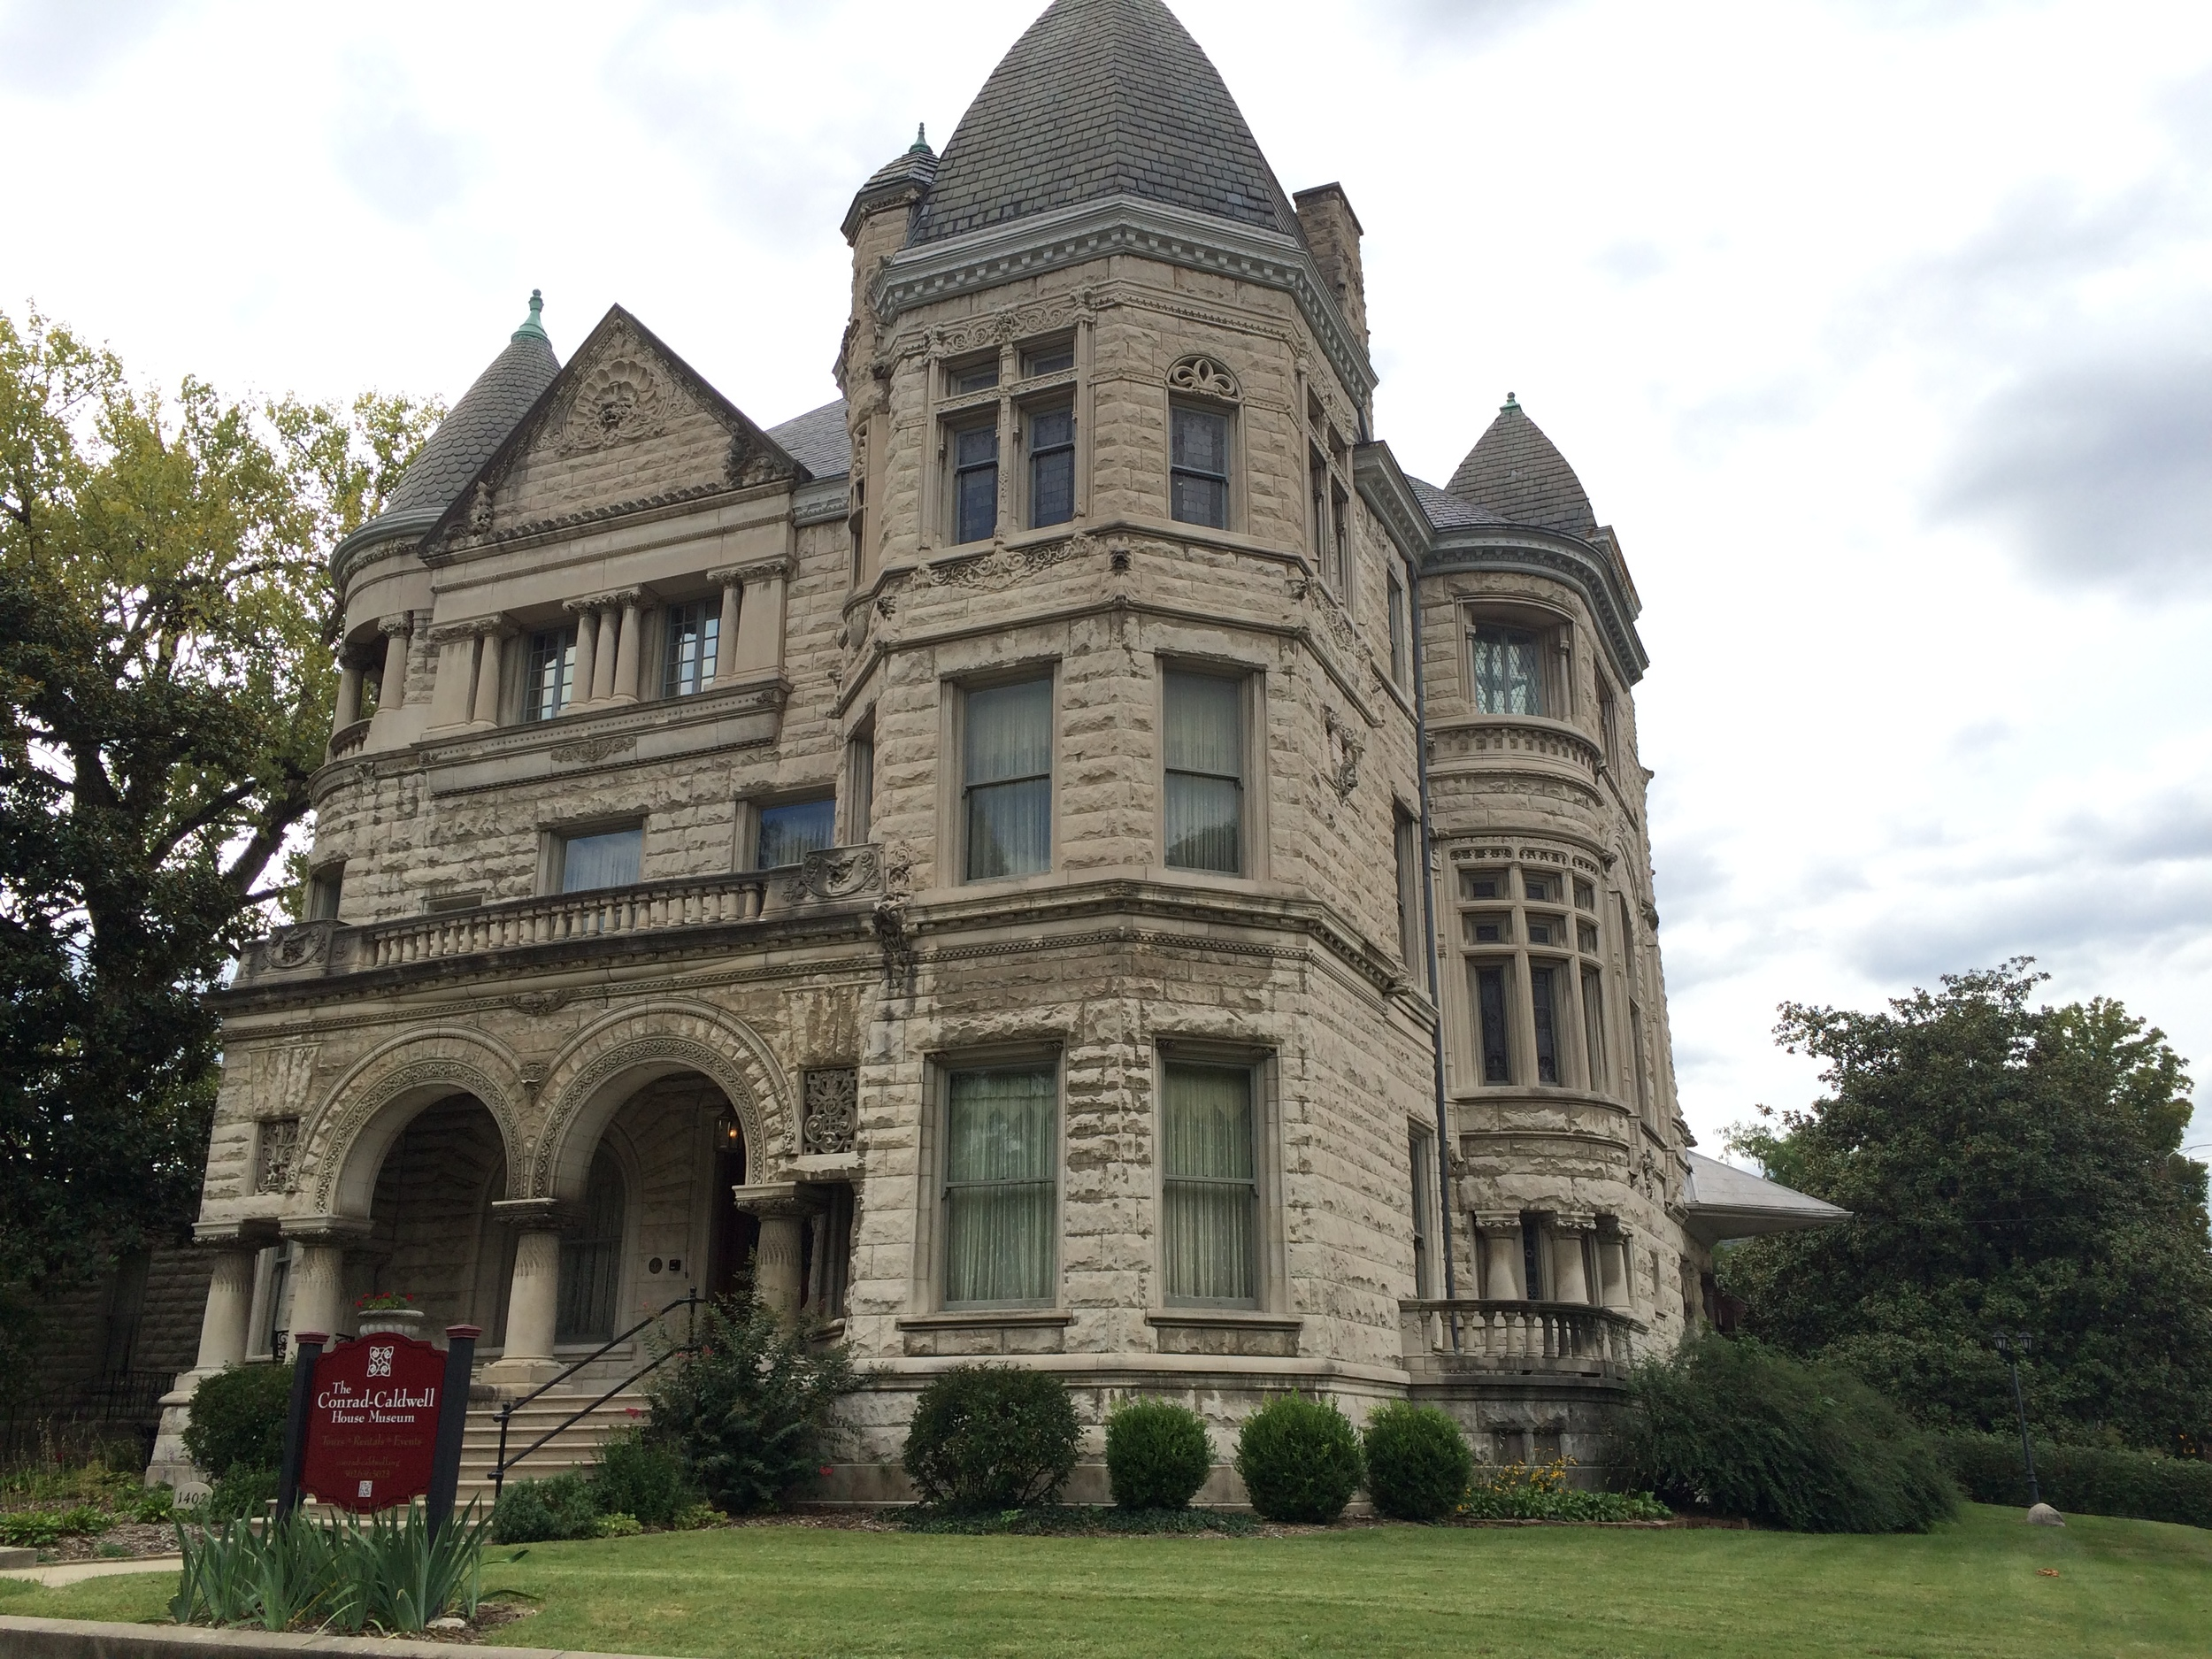 The Conrad-Caldwell House, built in a Romanesque style in 1895, in Old Louisville.